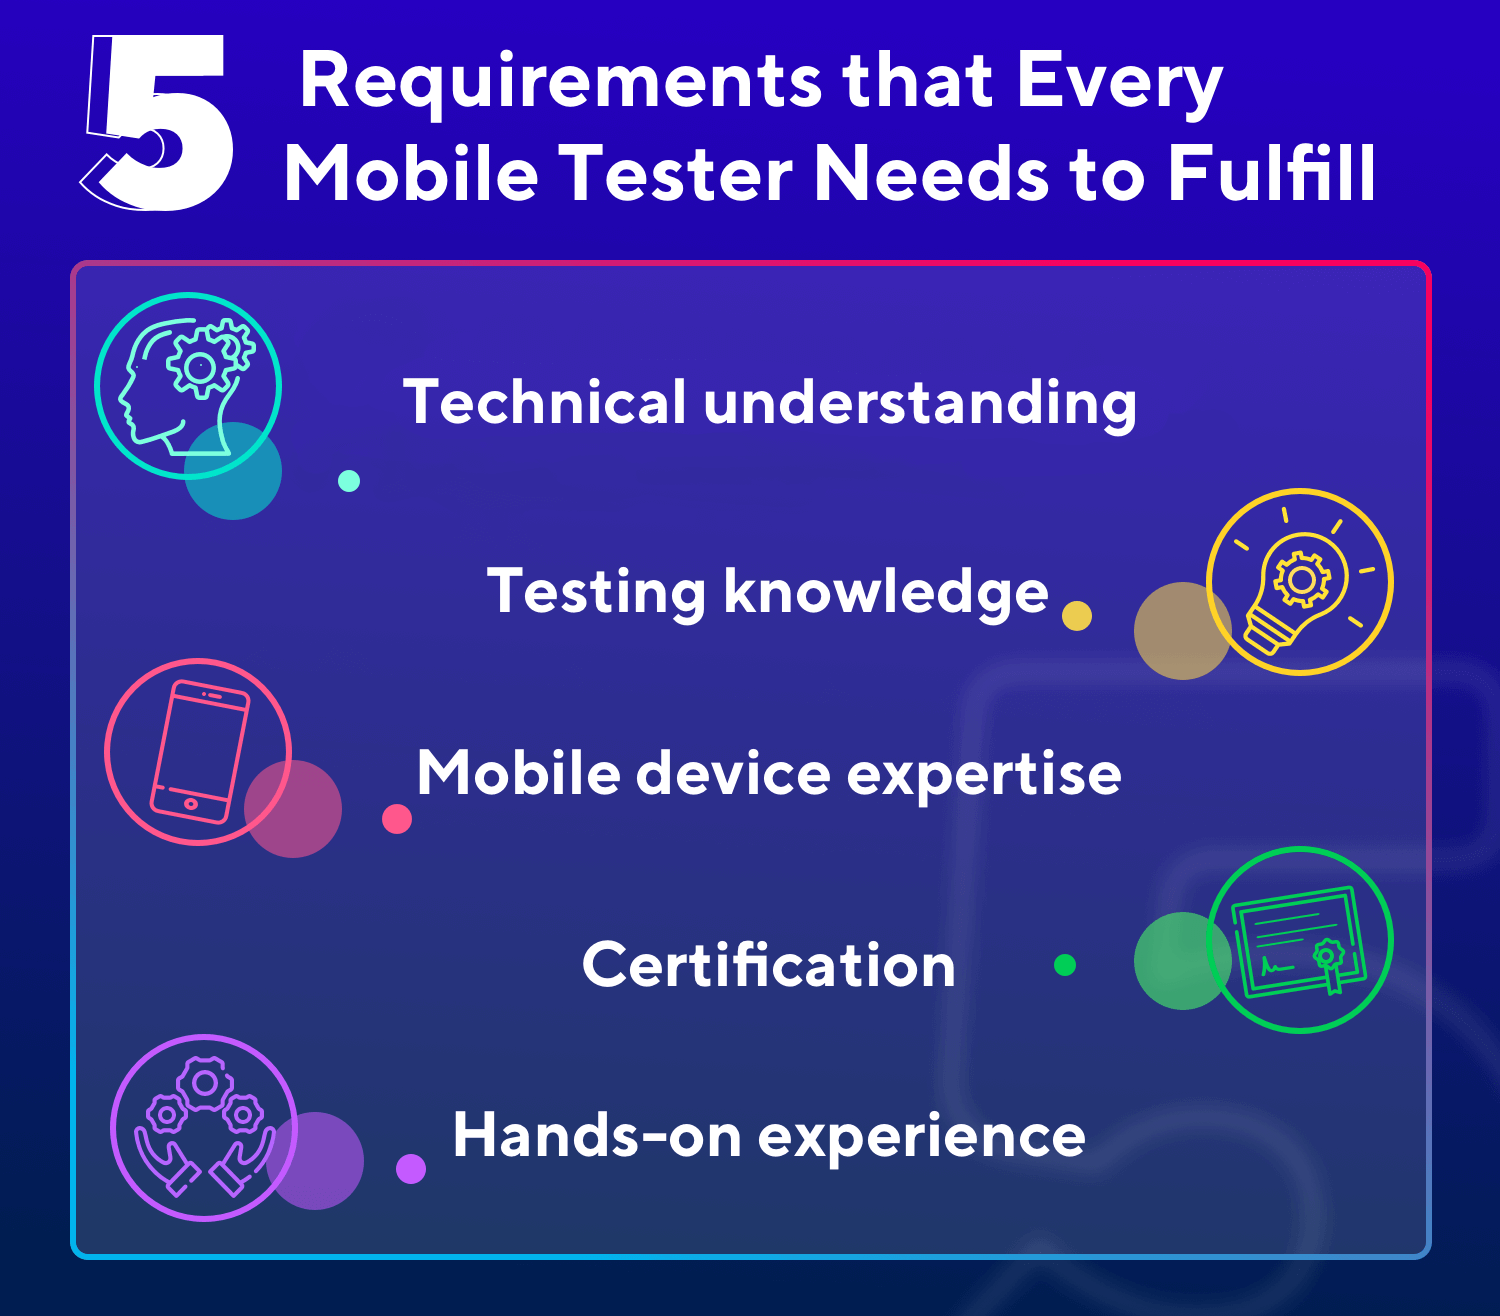 5 Must-have Requirements for Every Mobile Tester